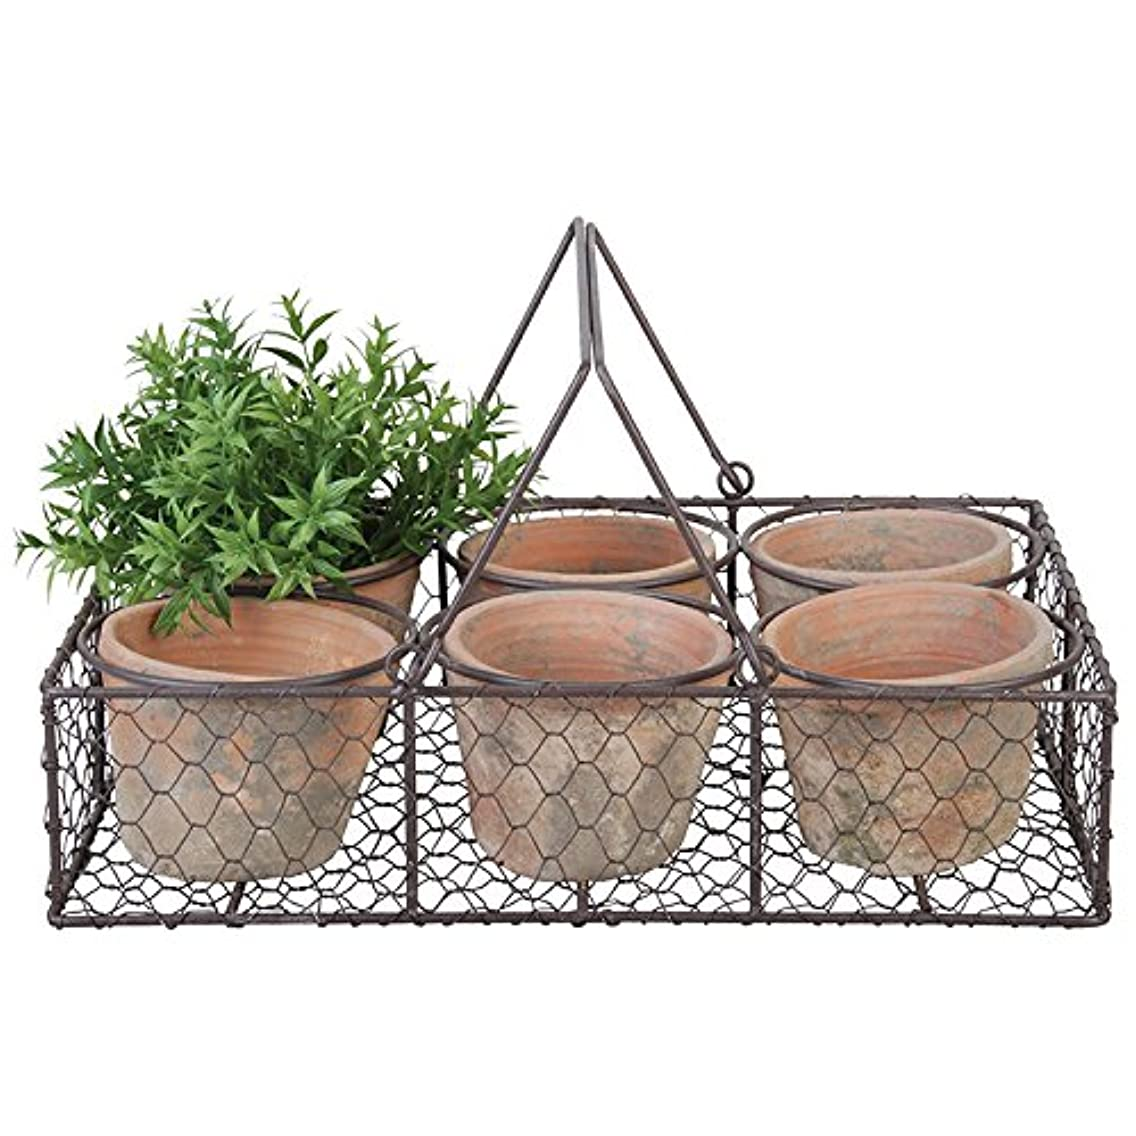 Esschert Design AT13 Aged Terracotta 6 Flowerpots in Metal Basket with Handle